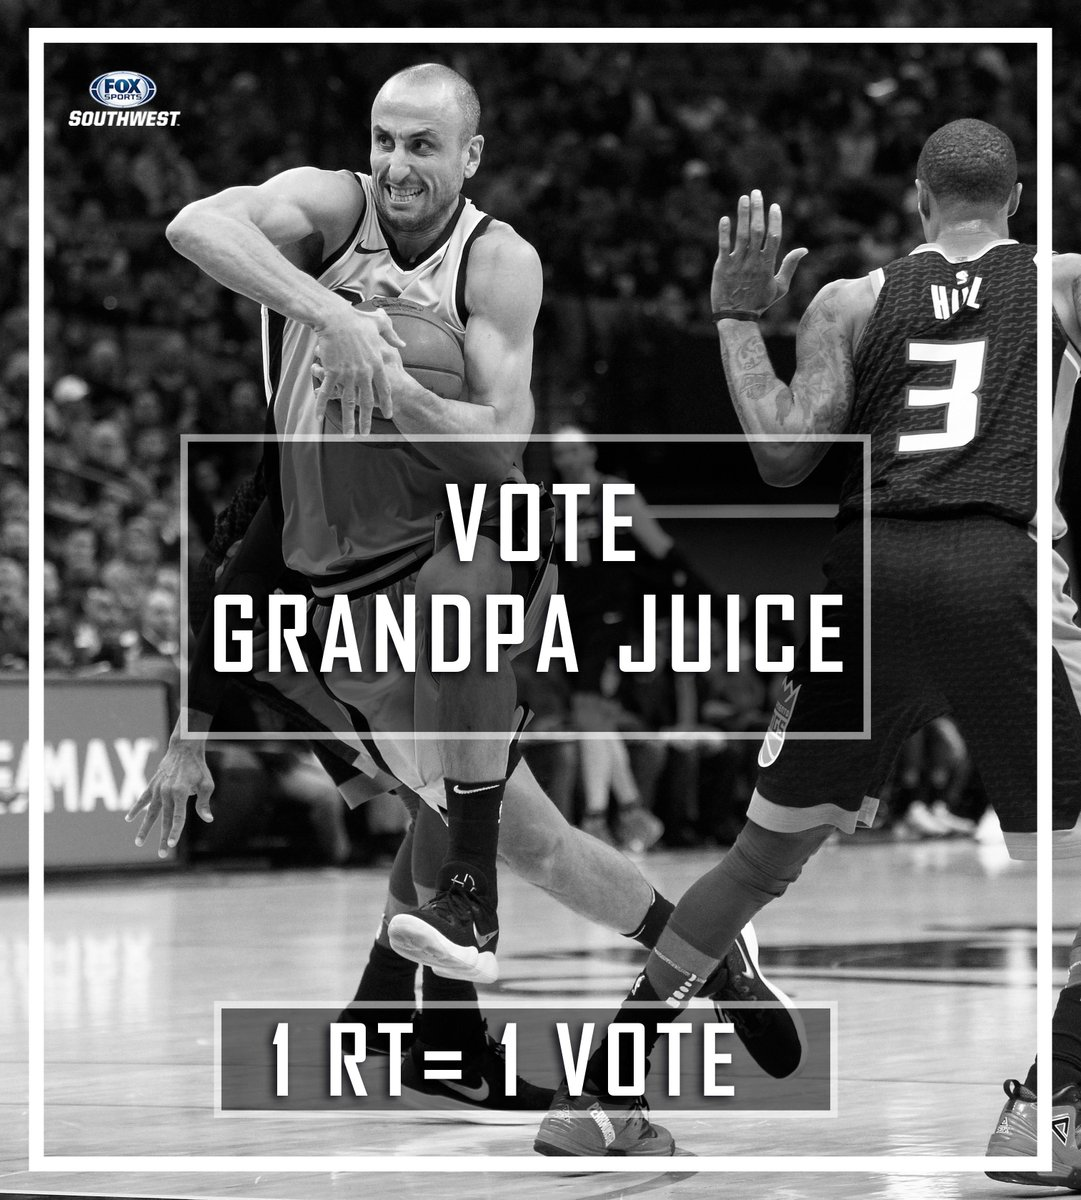 Alright @spurs fans! You know what to do!   1 RT= 1 VOTE for @manuginobili #NBAVOTE